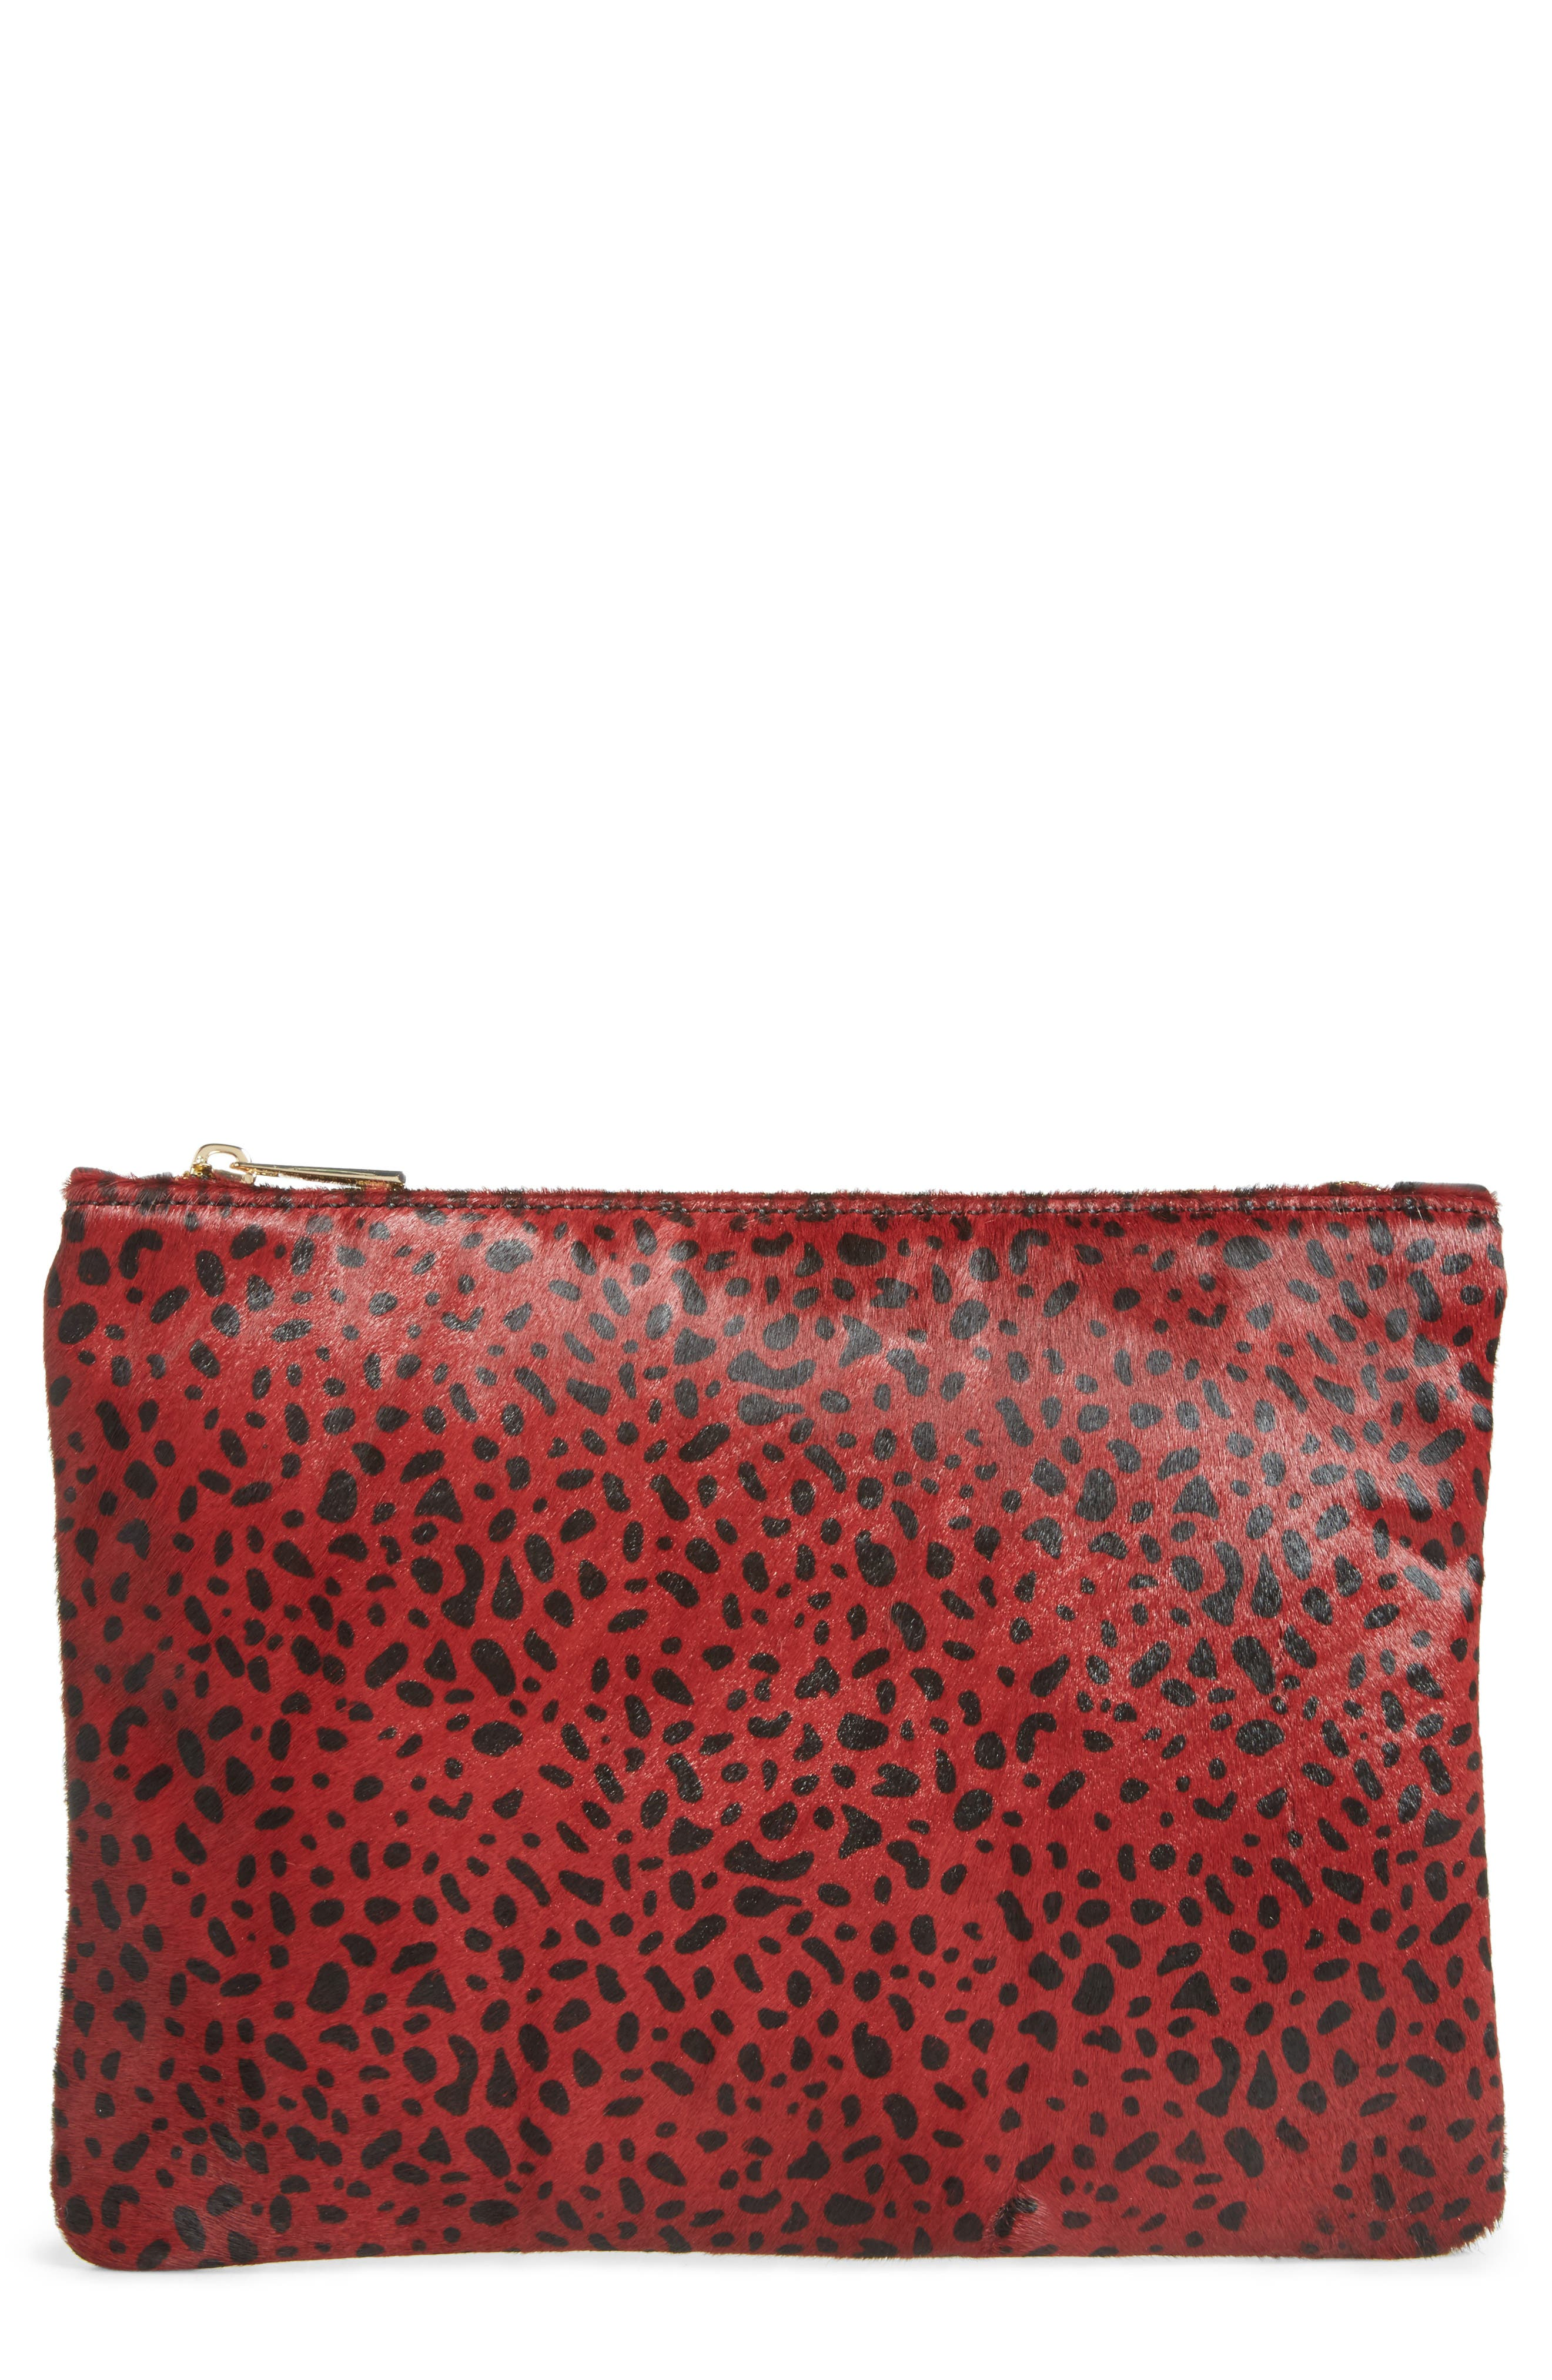 Sole Society 'Dolce' Genuine Calf Hair Clutch